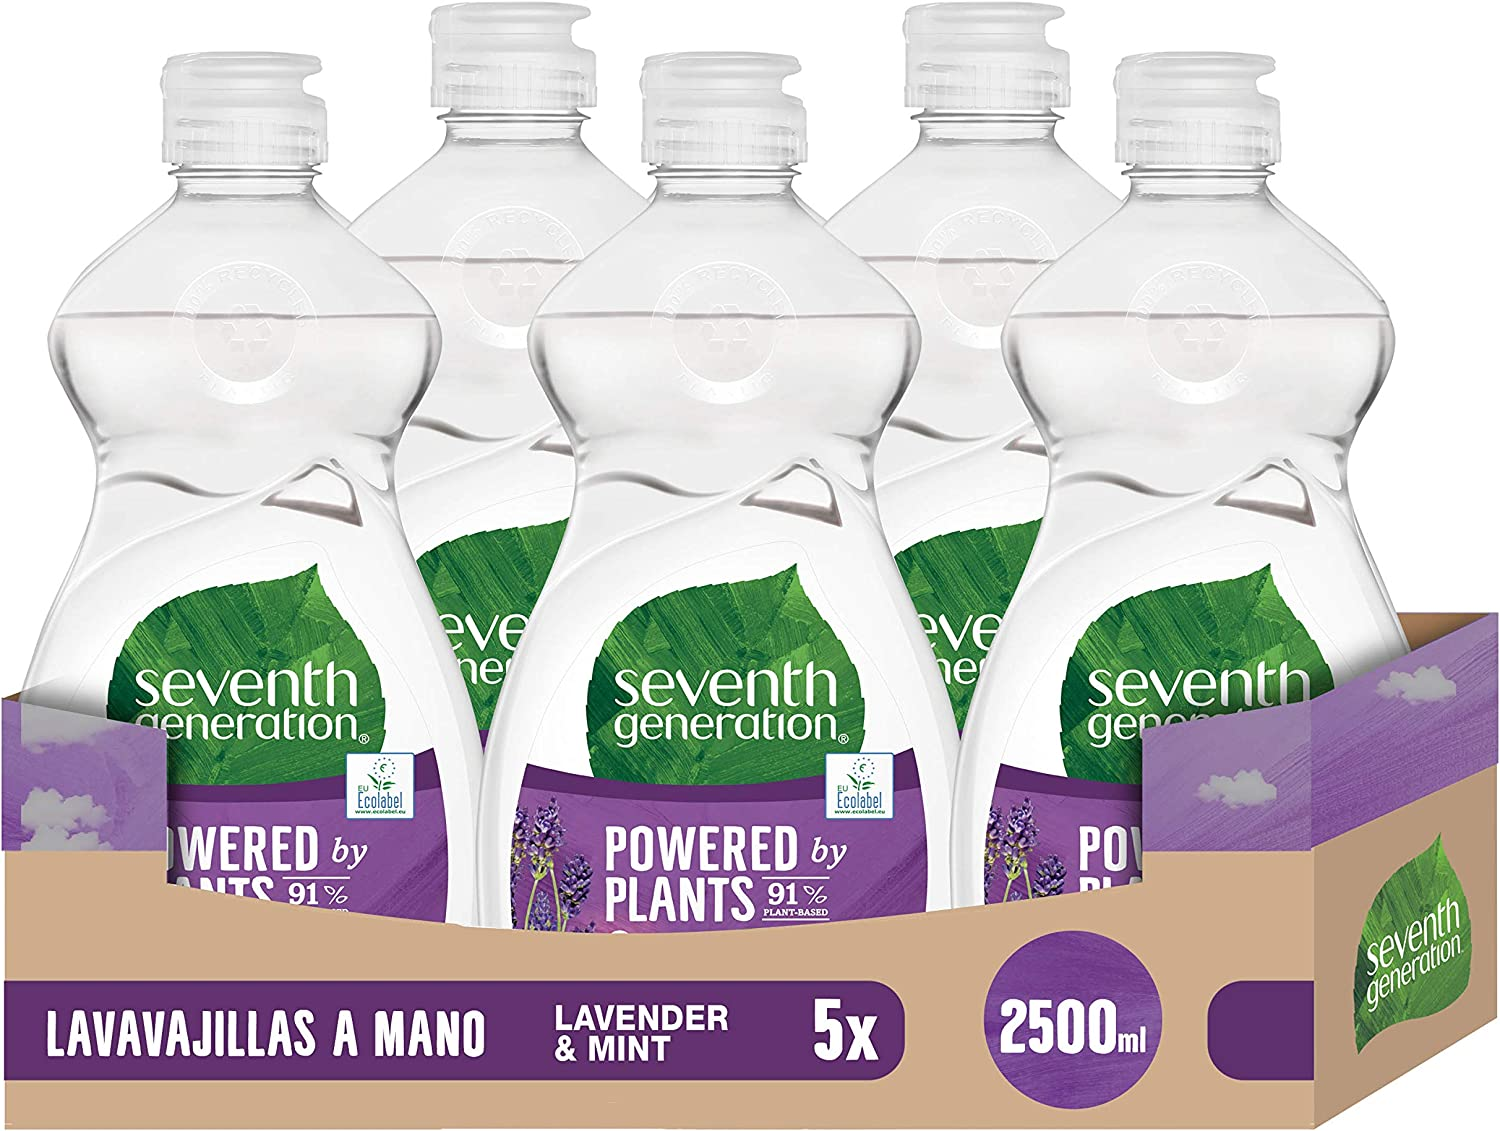 Seventh Generation Lavender Flower & Mint - Lavavajillas a Mano, 0% fragancias sintéticas y colorantes, 5 Recipientes de 500 ml, Total: 2500 ml